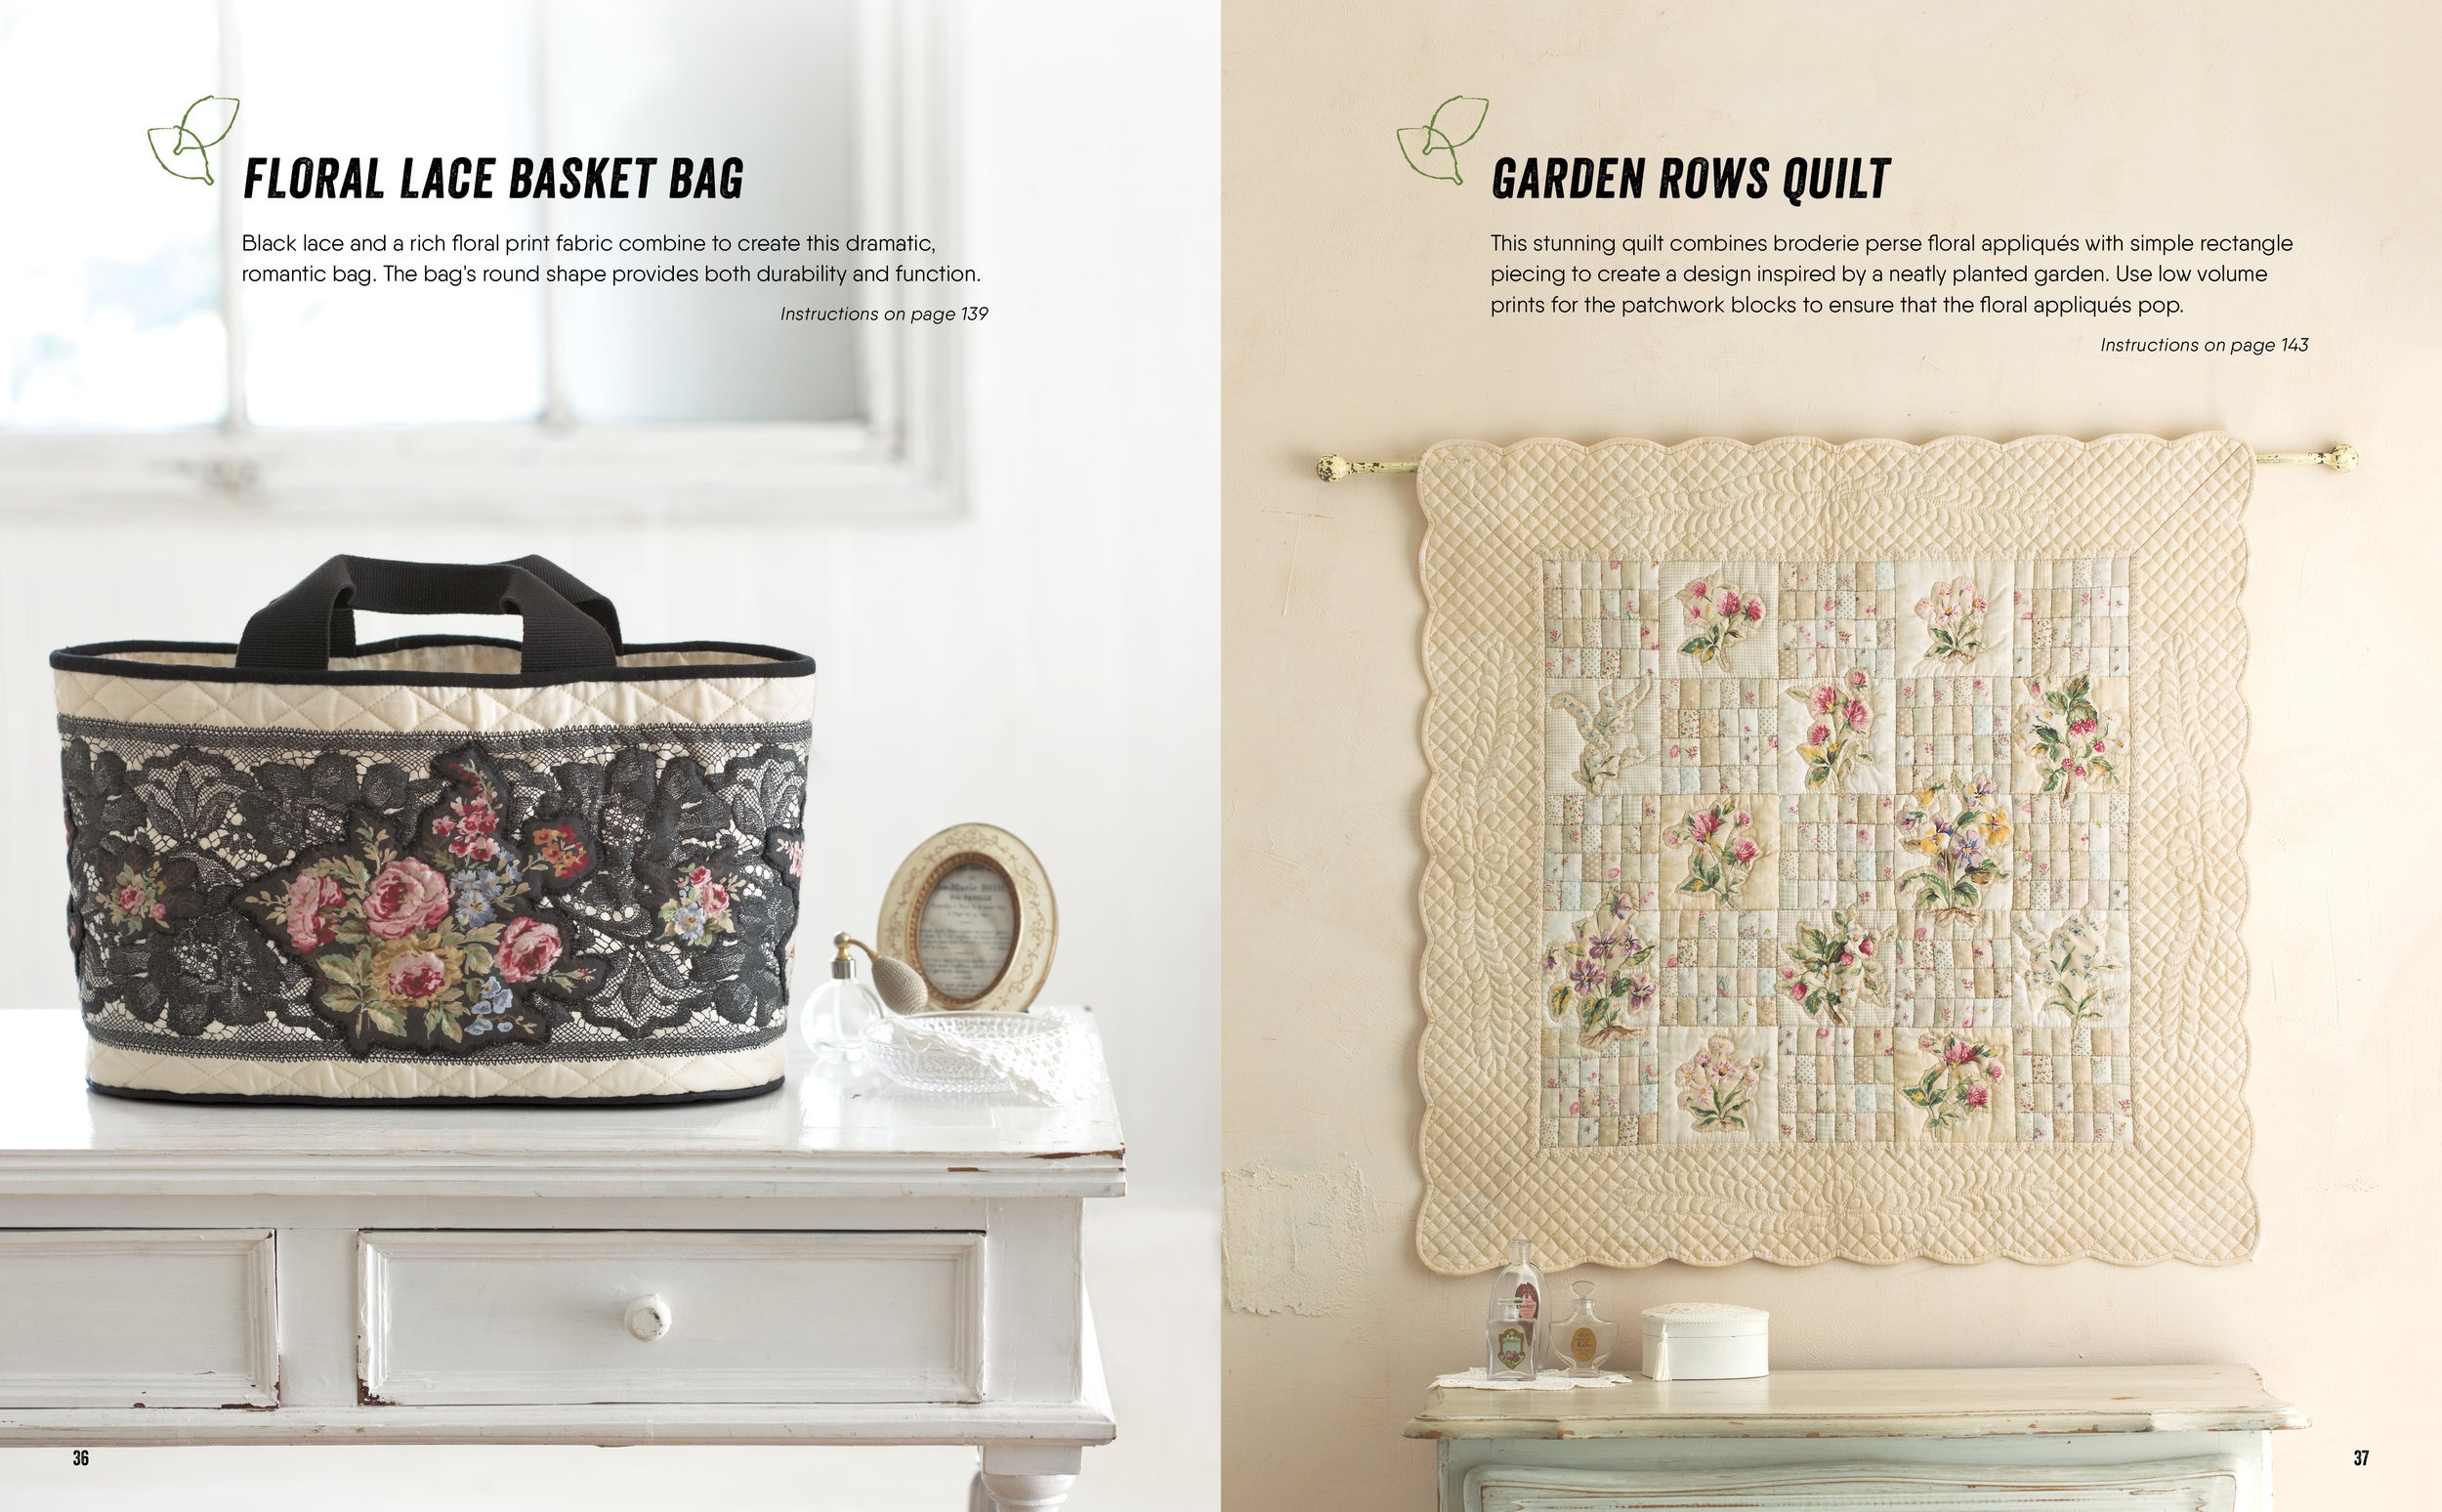 Quilted Throws, Bags, & Accessories 36.37.jpg